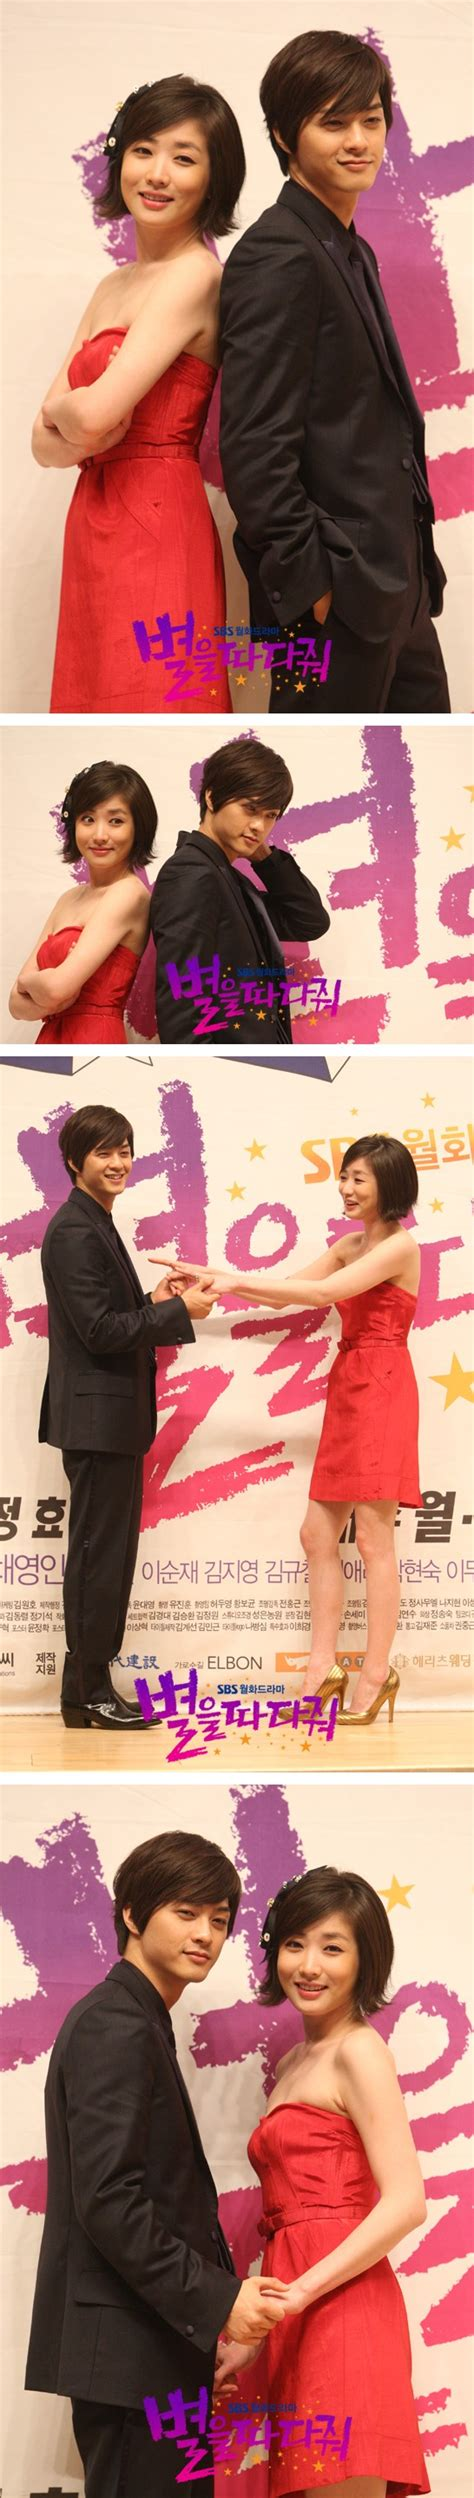 film drama korea wish upon a star wish upon a star 별을 따다줘 korean drama picture